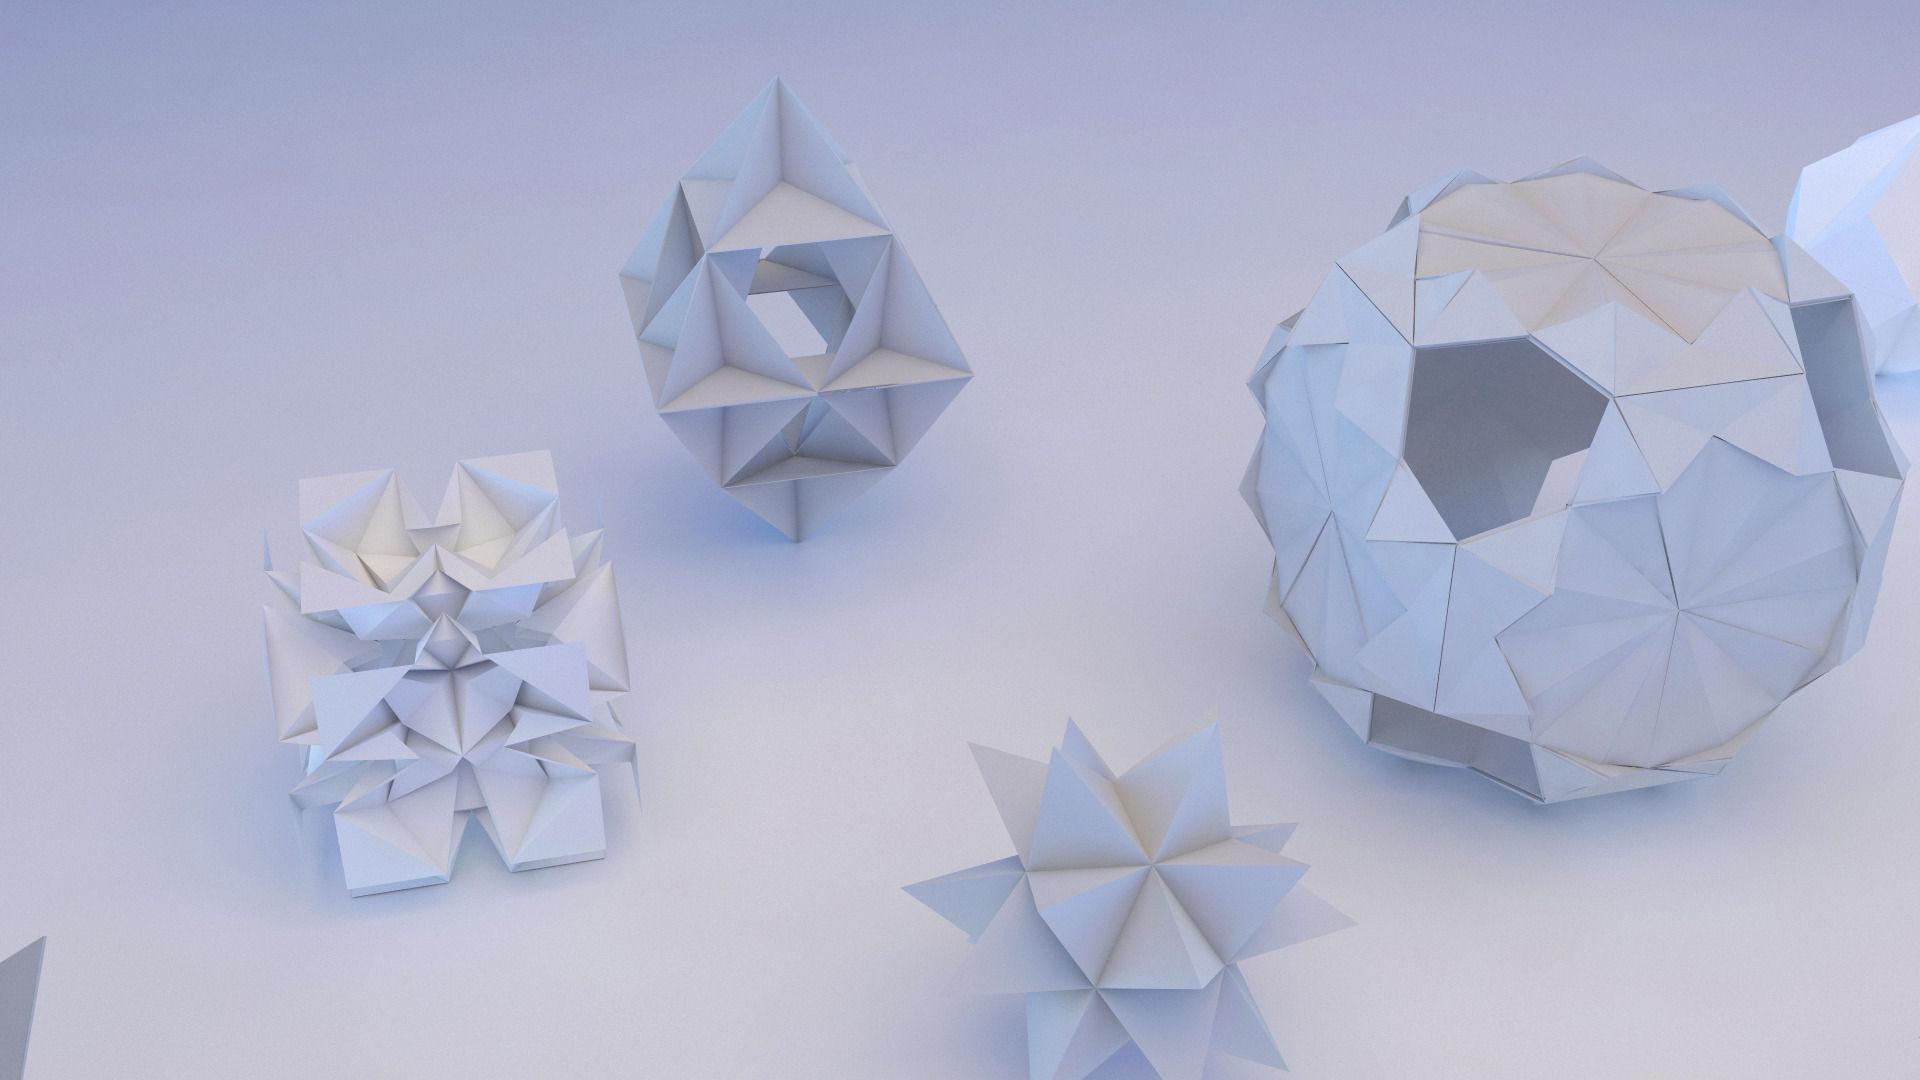 Origami Geometric 3D Model MAX OBJ 3DS FBX MTL | CGTrader.com - photo#12